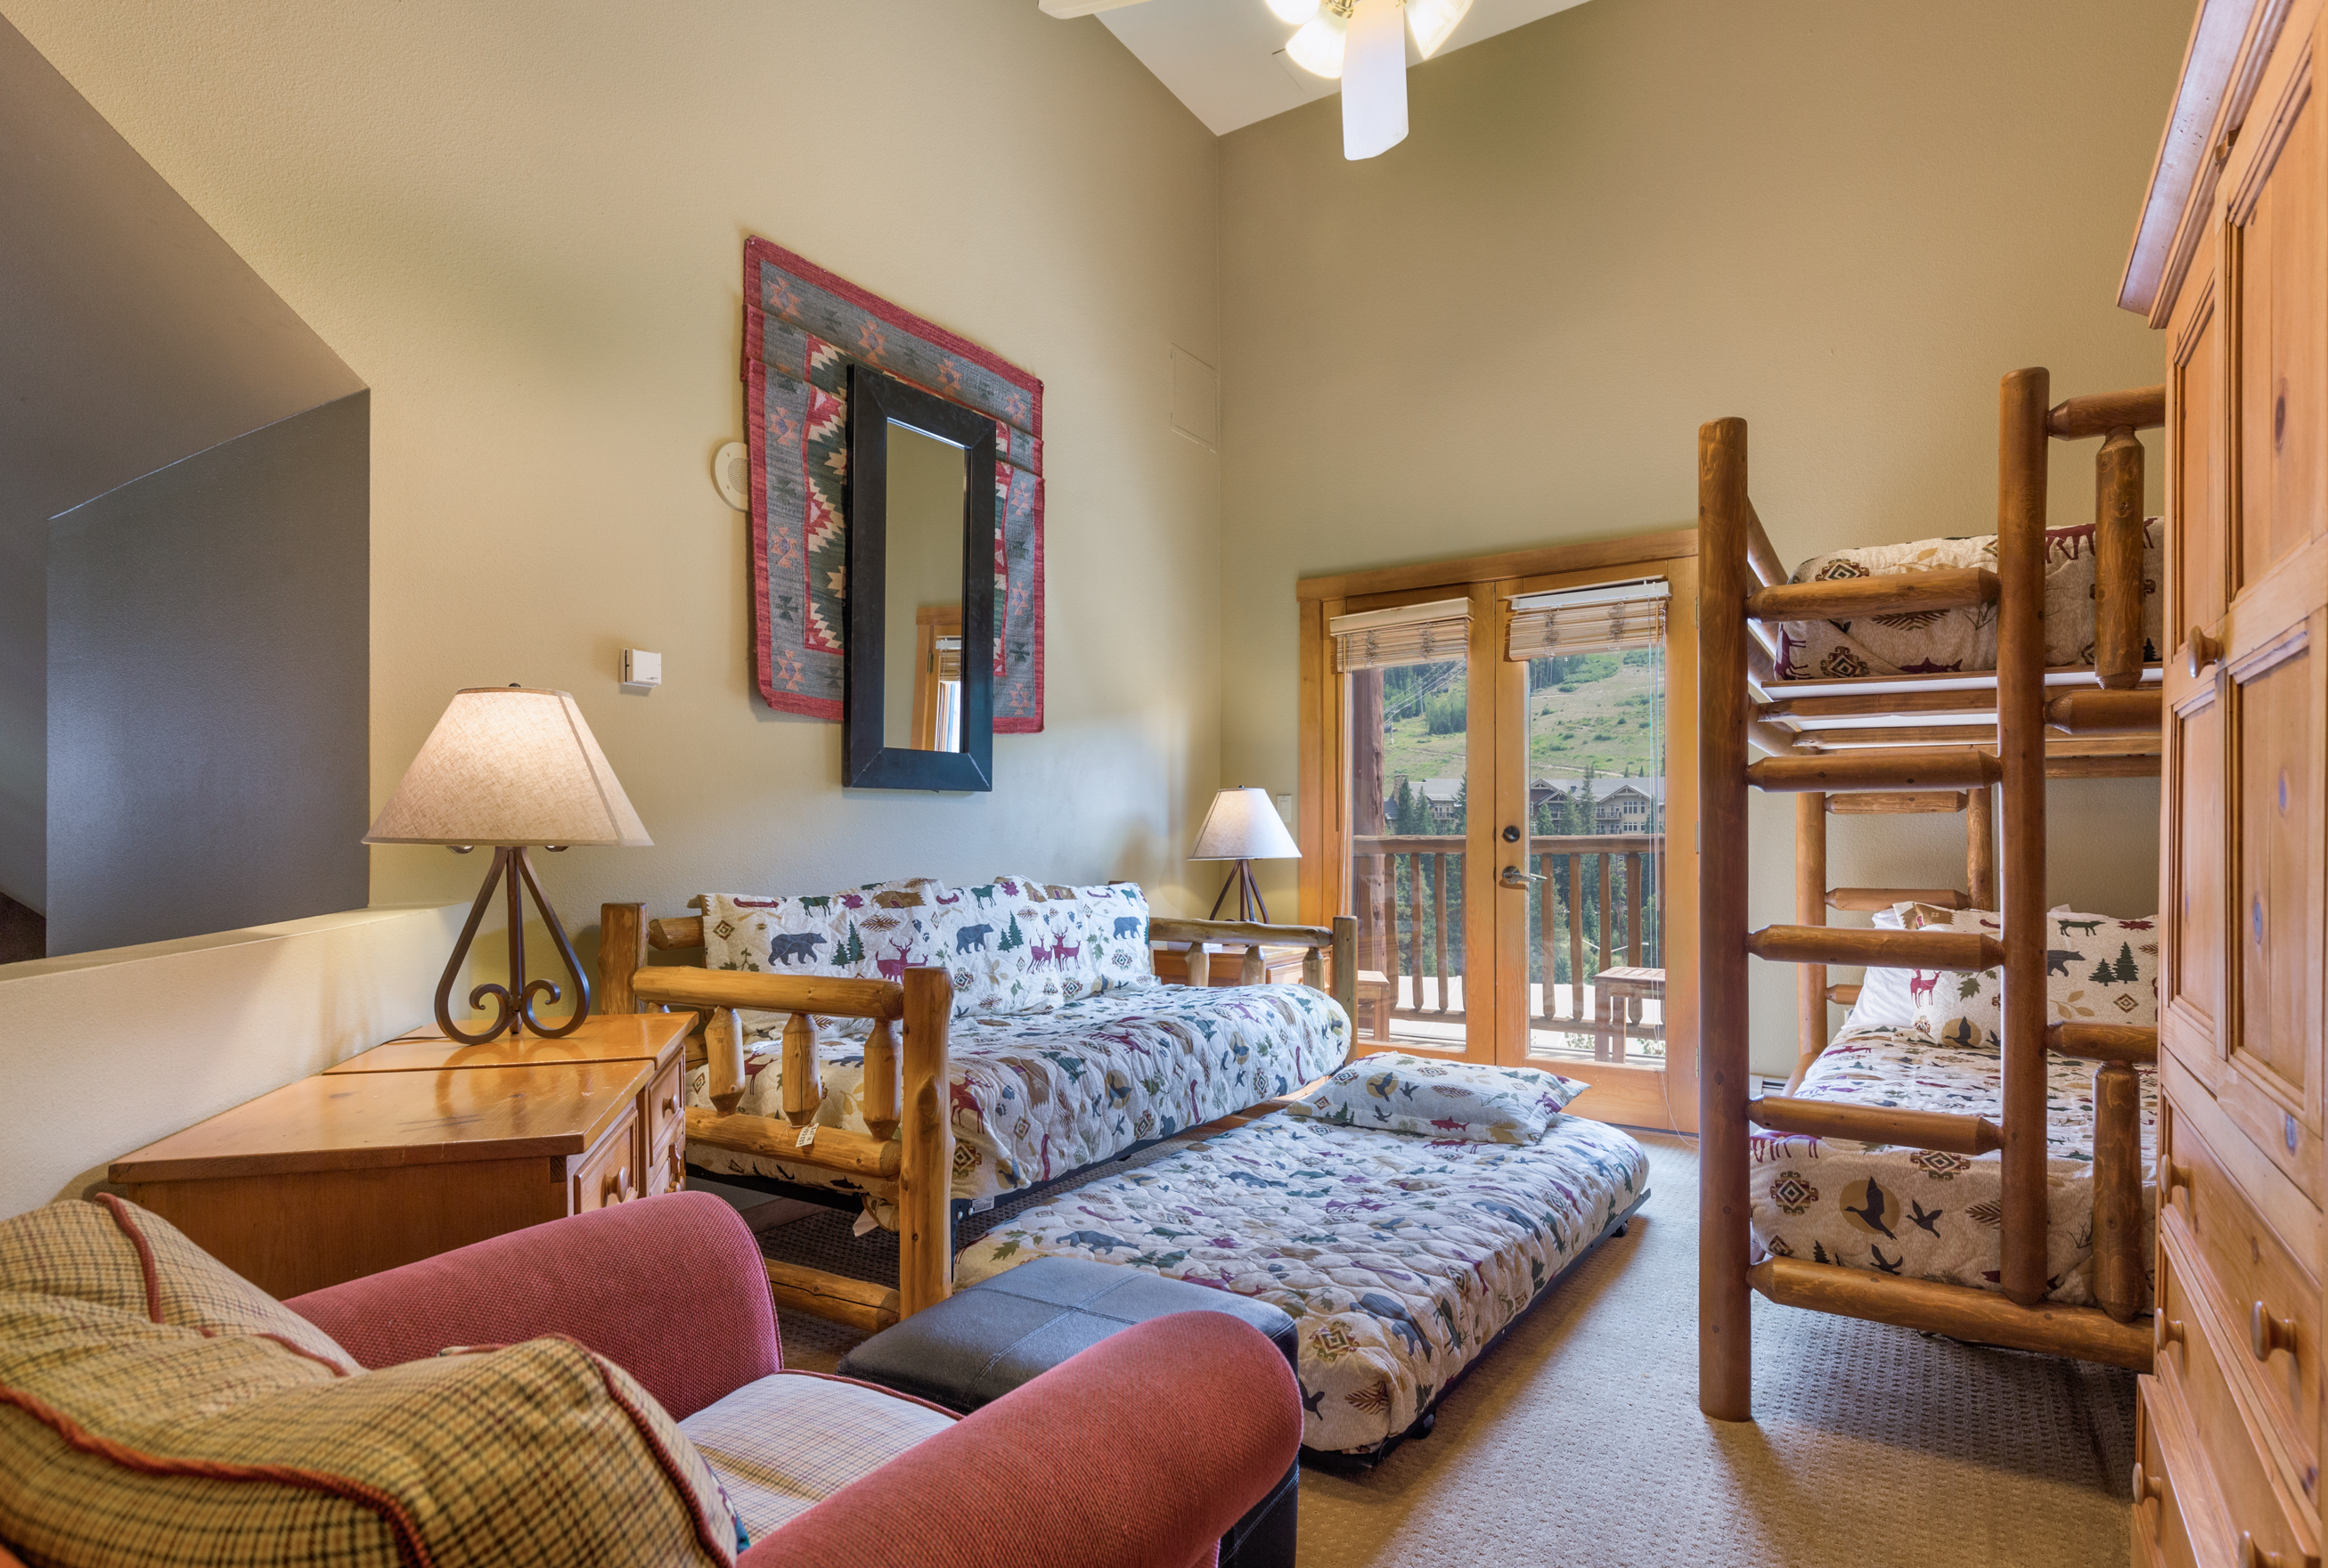 The second guest bedroom is the upstairs loft and features a bunk bed, a daybed with a twin trundle and a flat screen TV. It has its own private balcony with beautiful ski slope views.